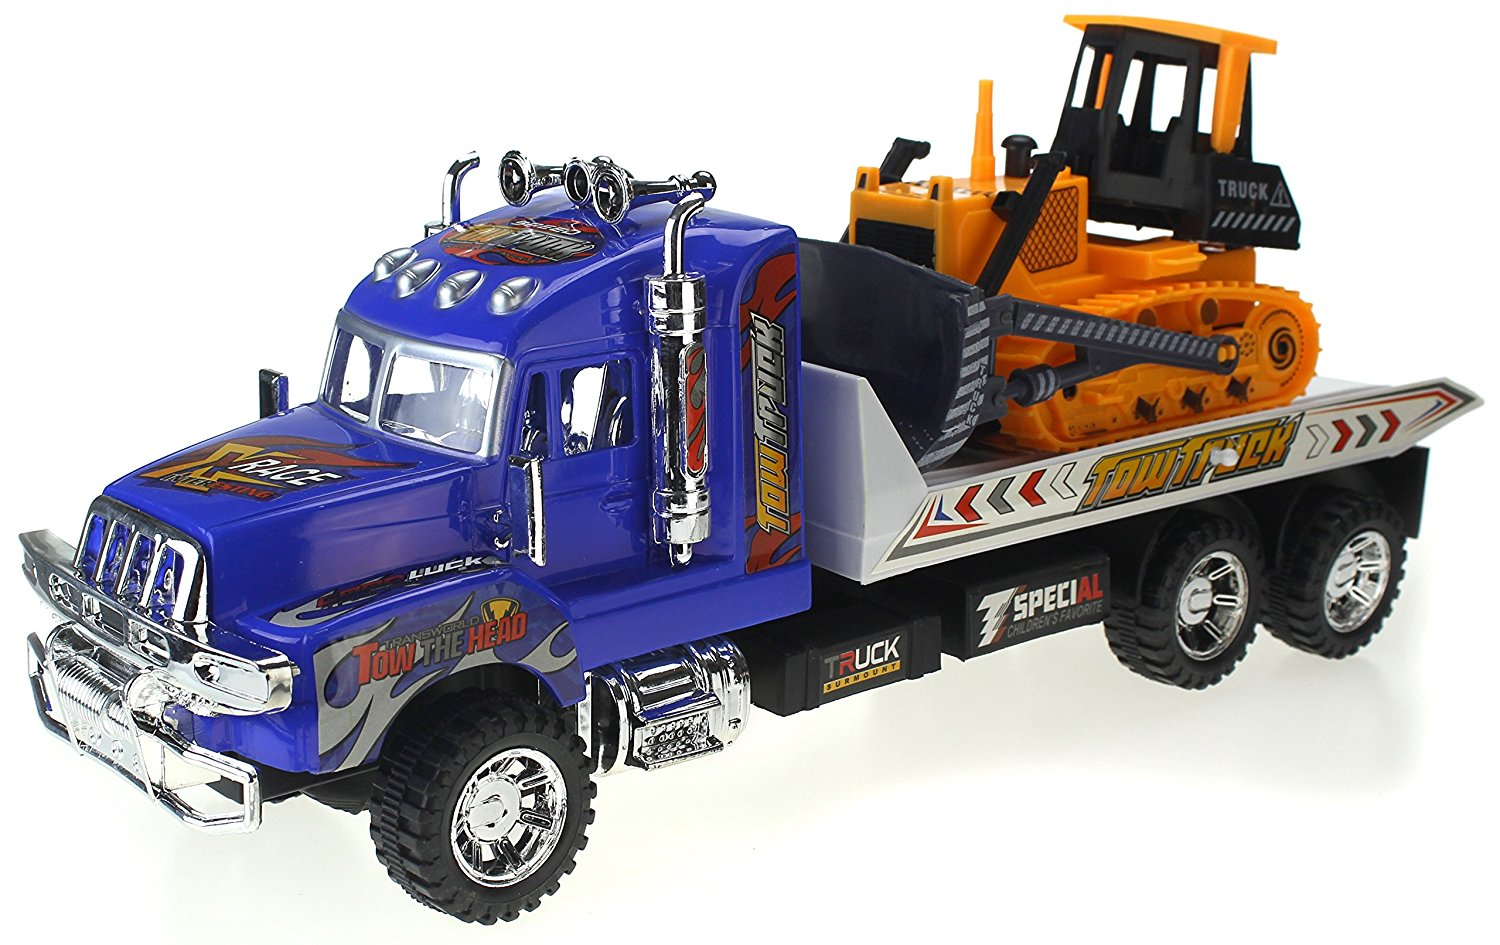 Super Speed Power Friction Powered Construction Toy Tow Truck w  Friction Power, &... by Velocity Toys